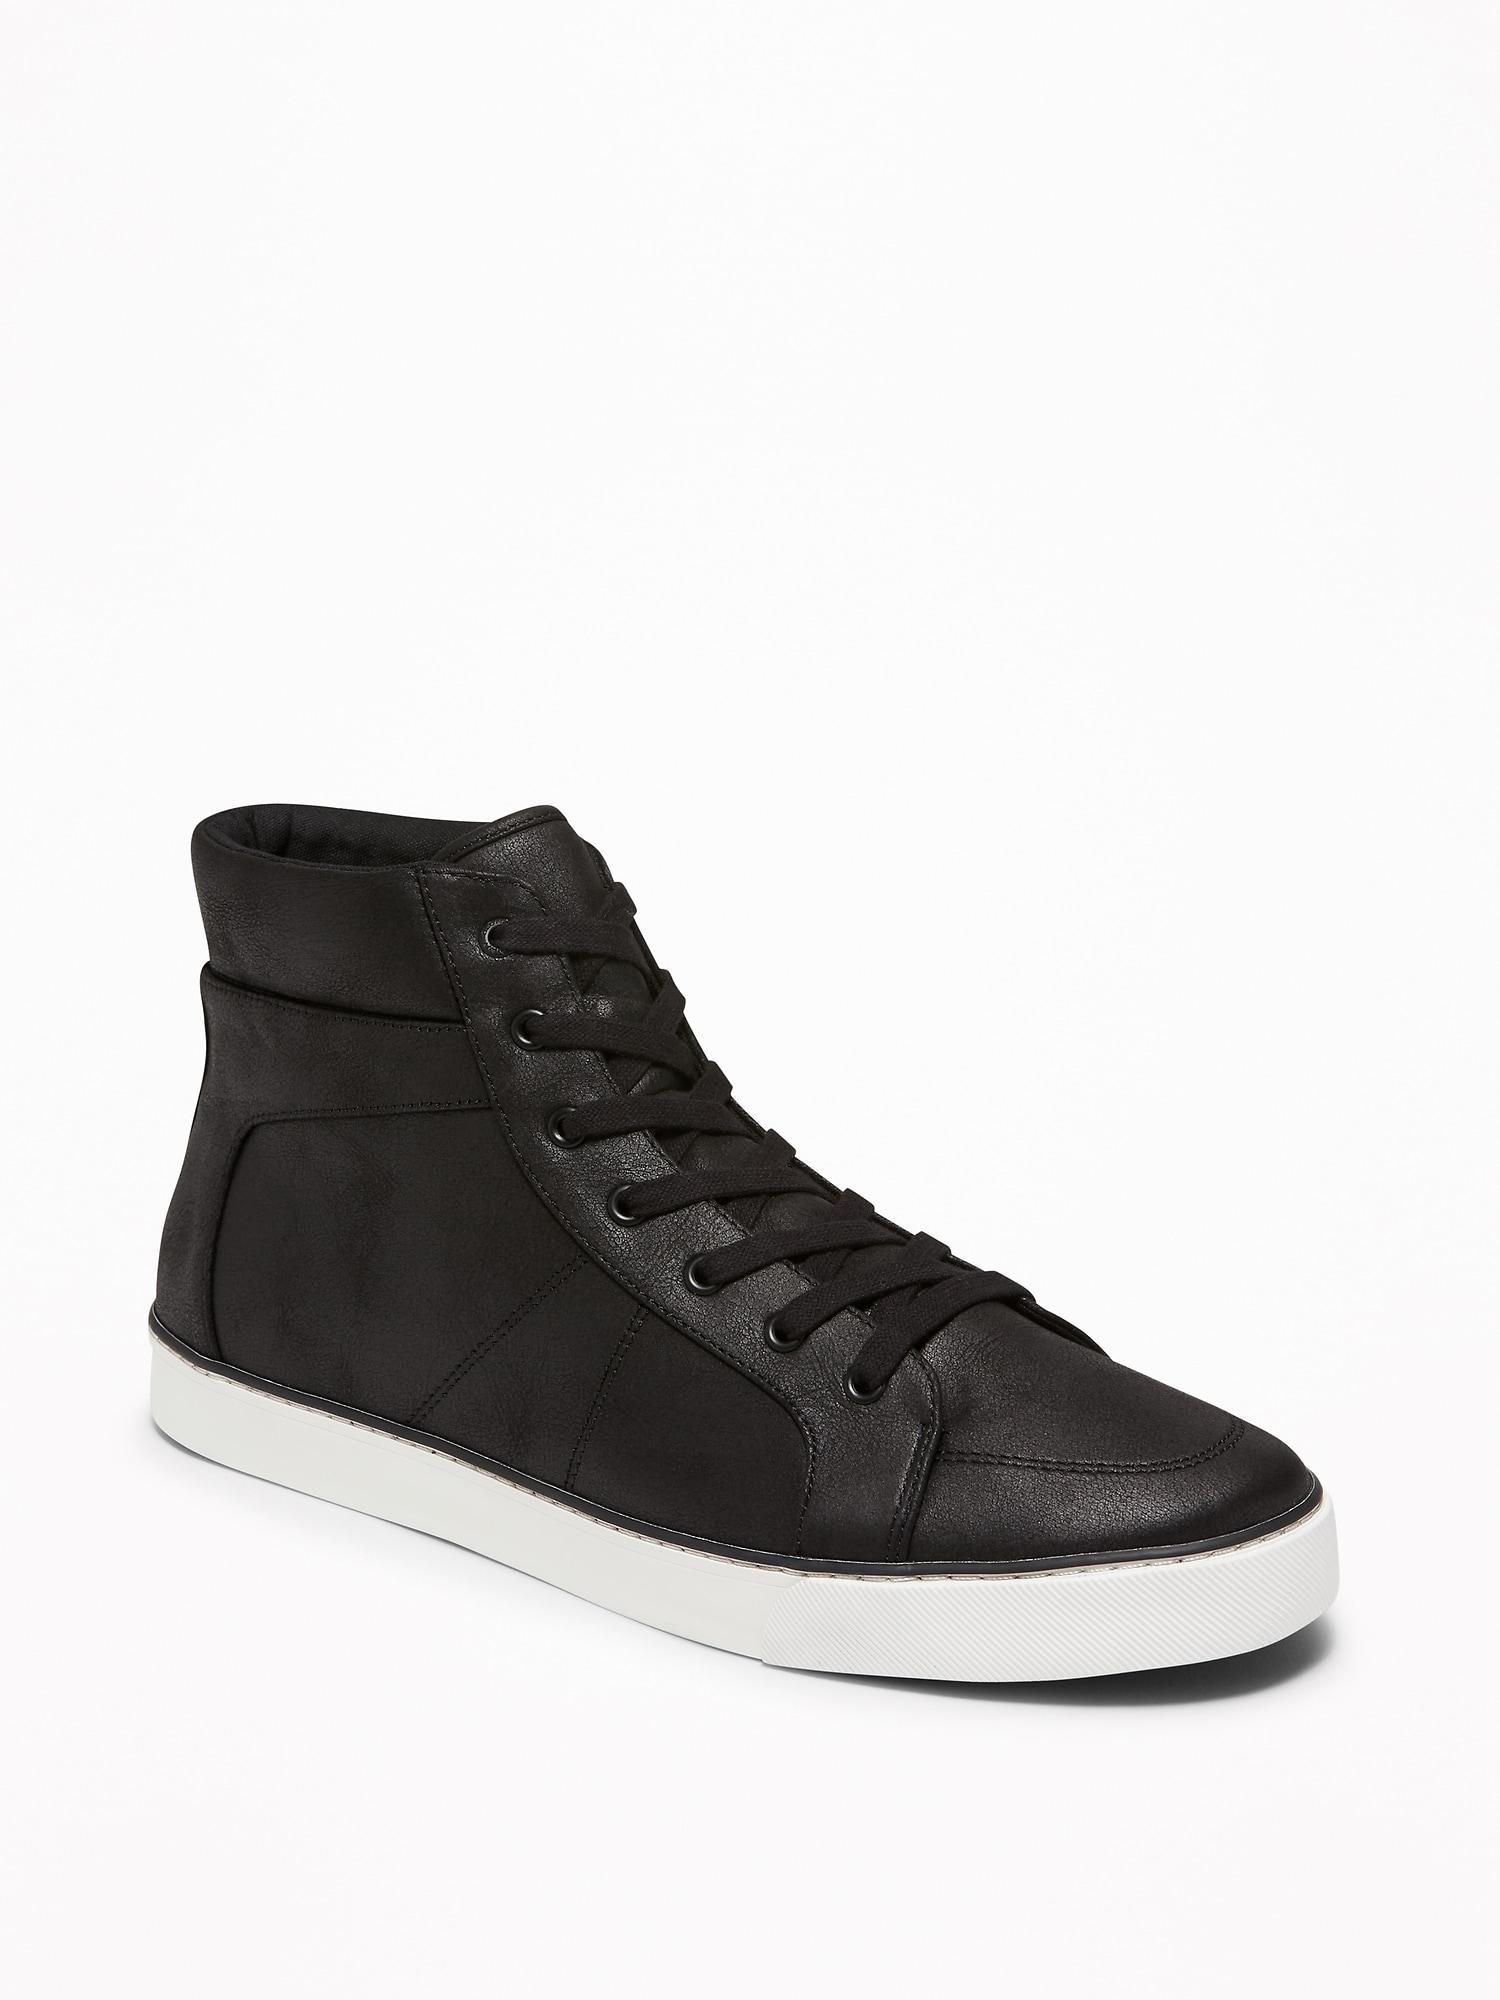 c9f50abbf3269 Old Navy Textured Faux-leather High-tops in Black for Men - Lyst